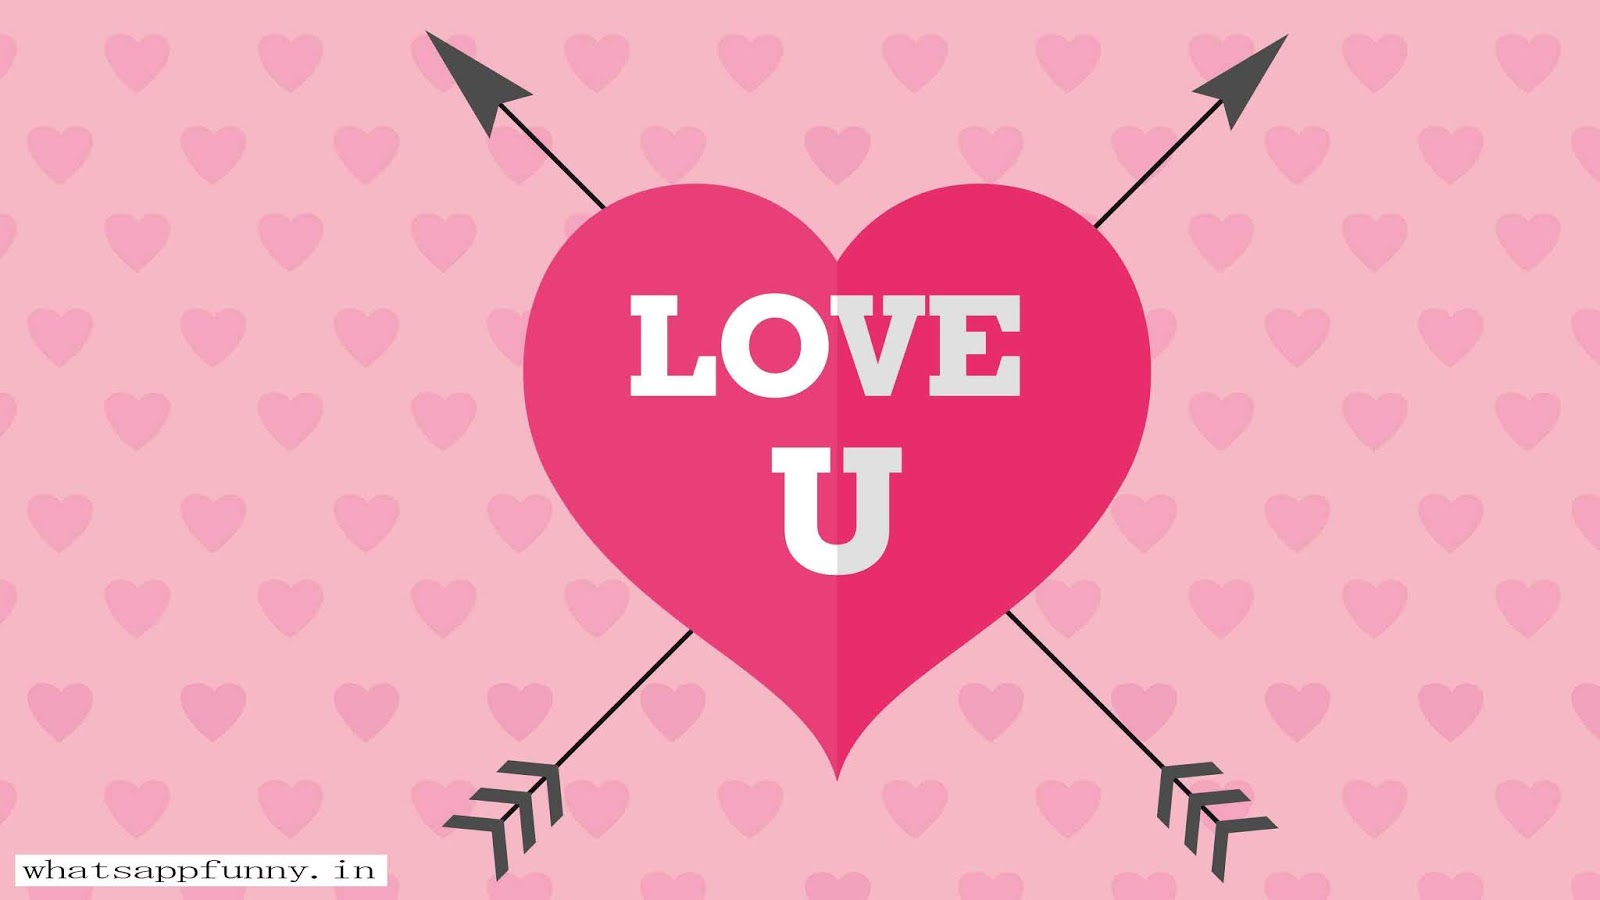 Love U images for whatsapp